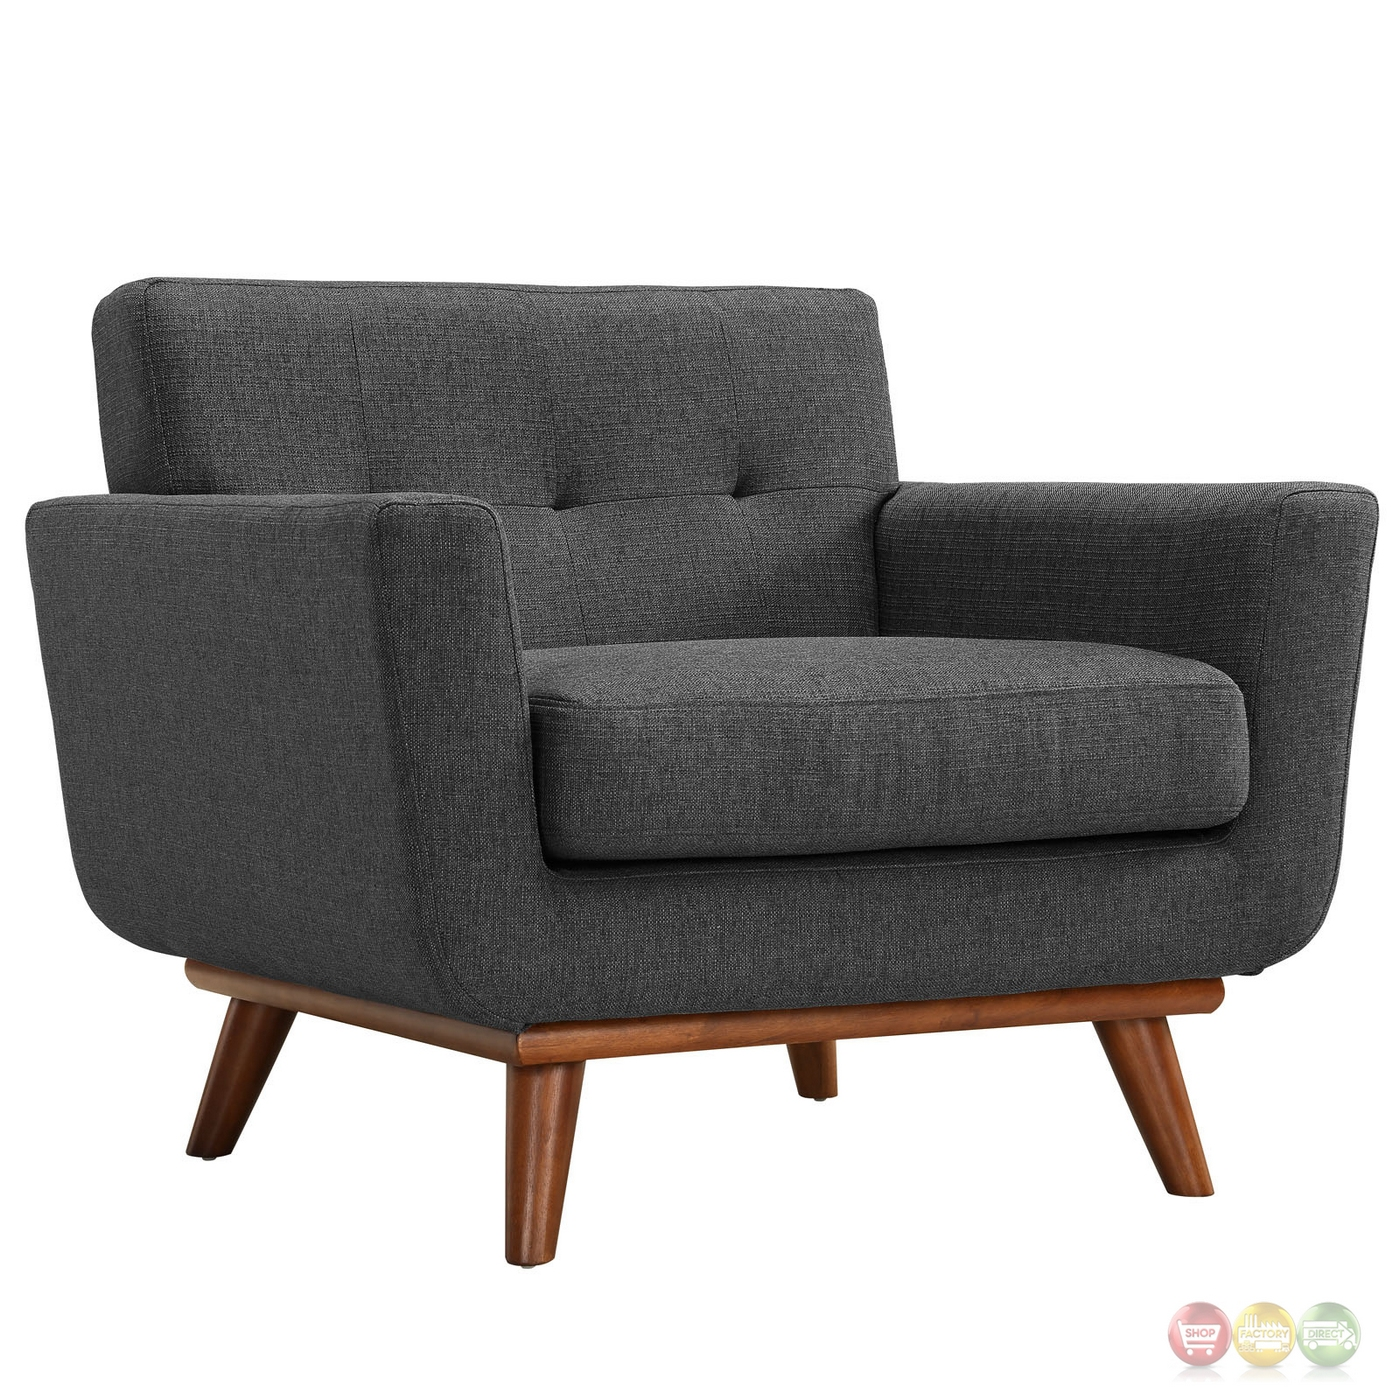 Engage modern 2pc upholstered button tufted sofa armchair for Tufted couch set